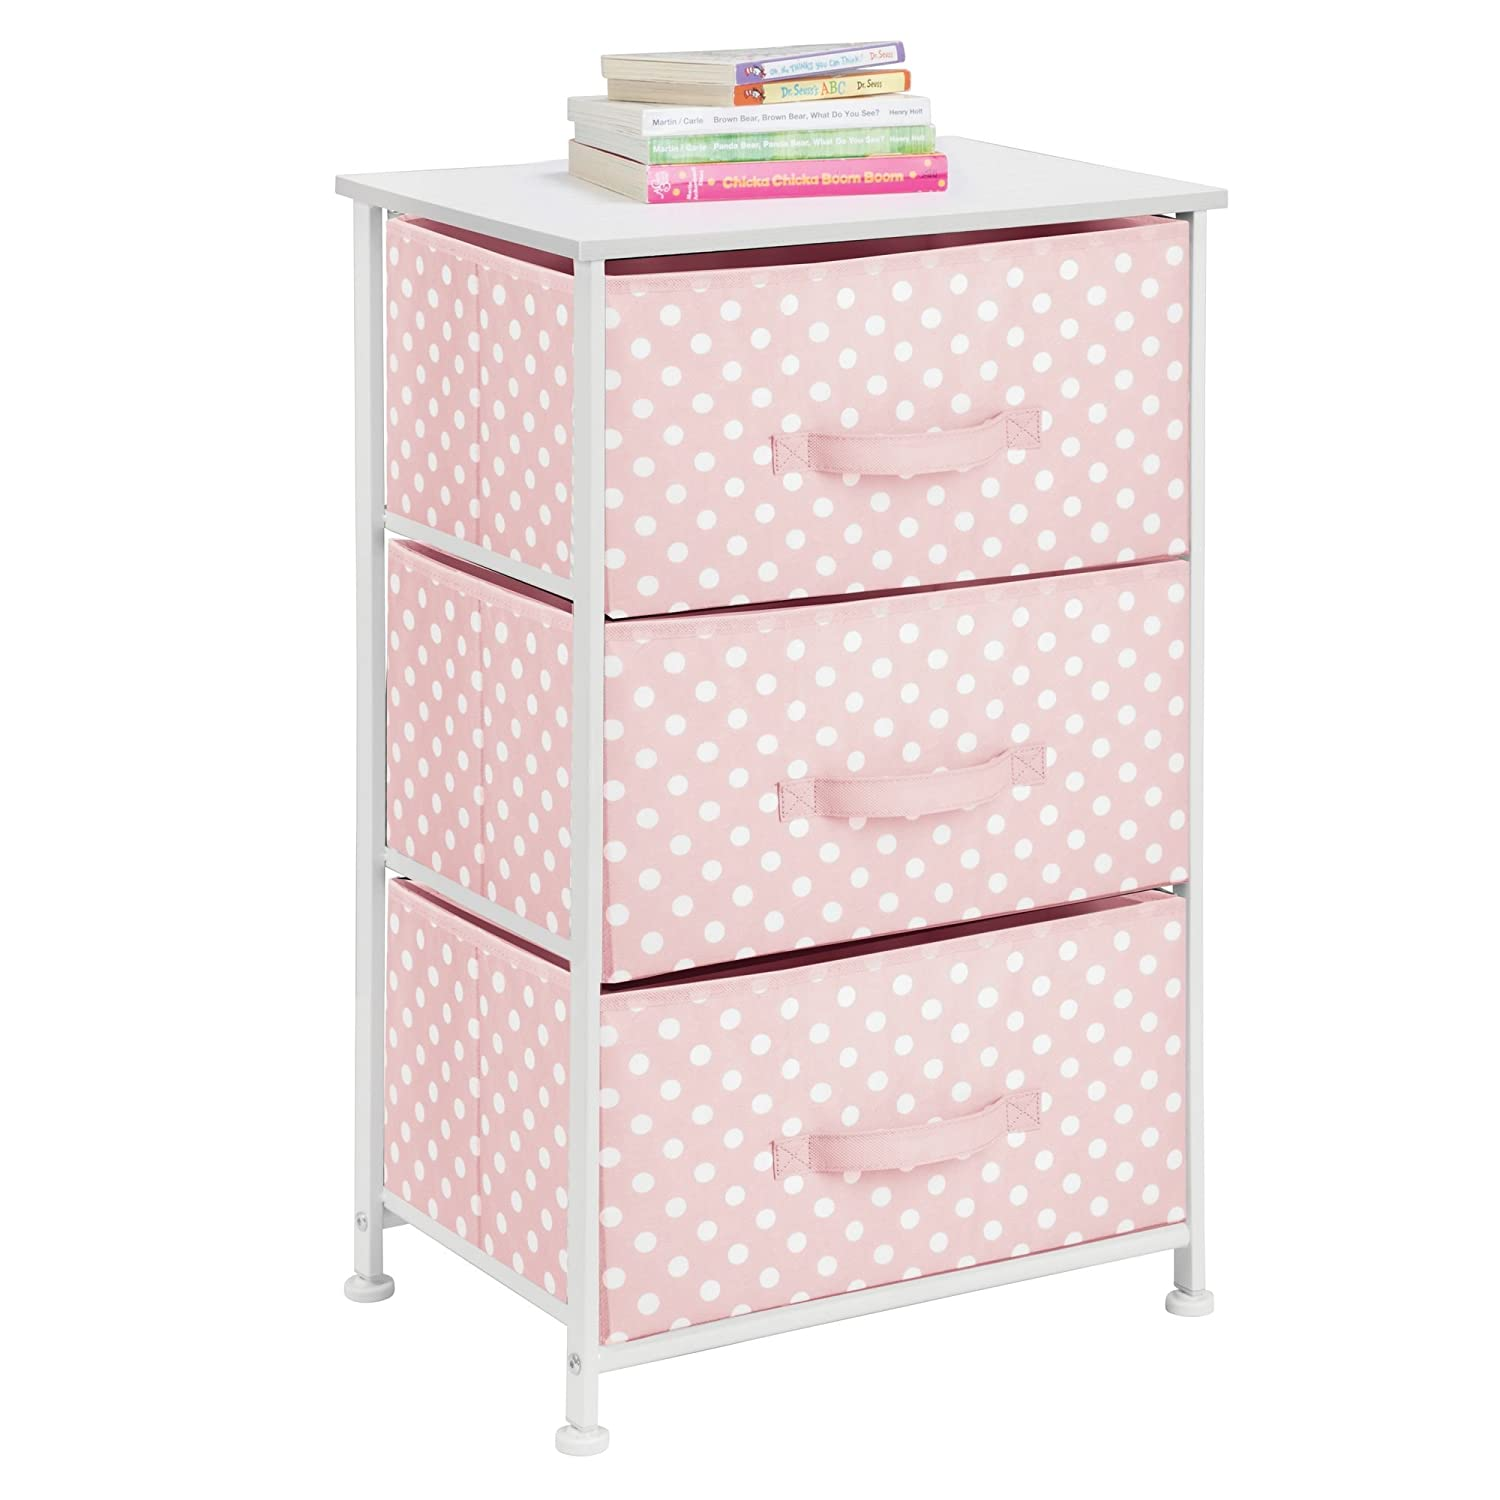 mDesign 3-Drawer Vertical Dresser Storage Tower - Sturdy Steel Frame, Wood Top and Easy Pull Fabric Bins - Multi-Bin Organizer Unit for Child/Kids Bedroom or Nursery - Light Pink with White Polka Dots MetroDecor